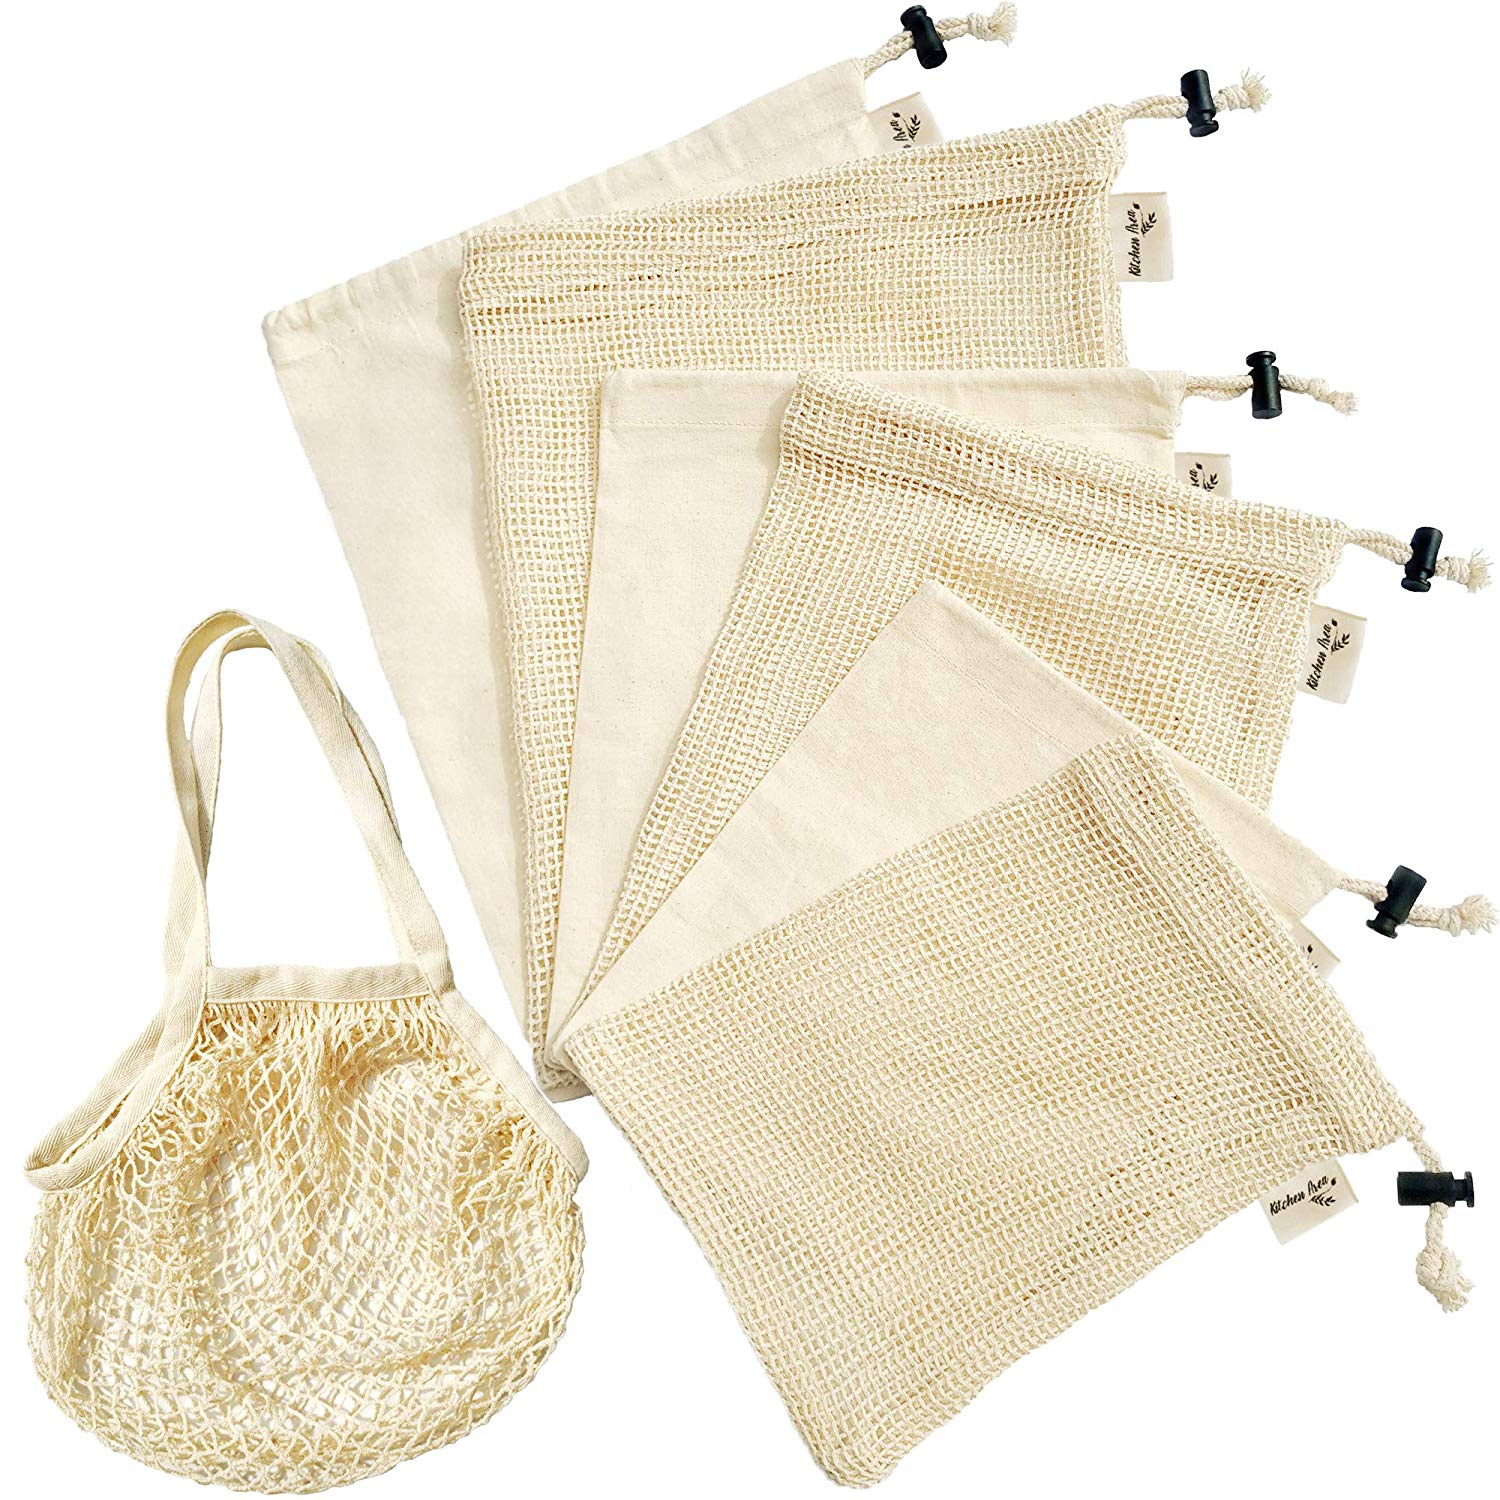 c043fc26ceea Reusable Produce Bags Set of 7 (3 Mesh 3 Muslin & 1 Grocery Bag) - Premium  Eco-Friendly Organic Biodegradable Washable Cotton Cloth Drawstring Bags ...